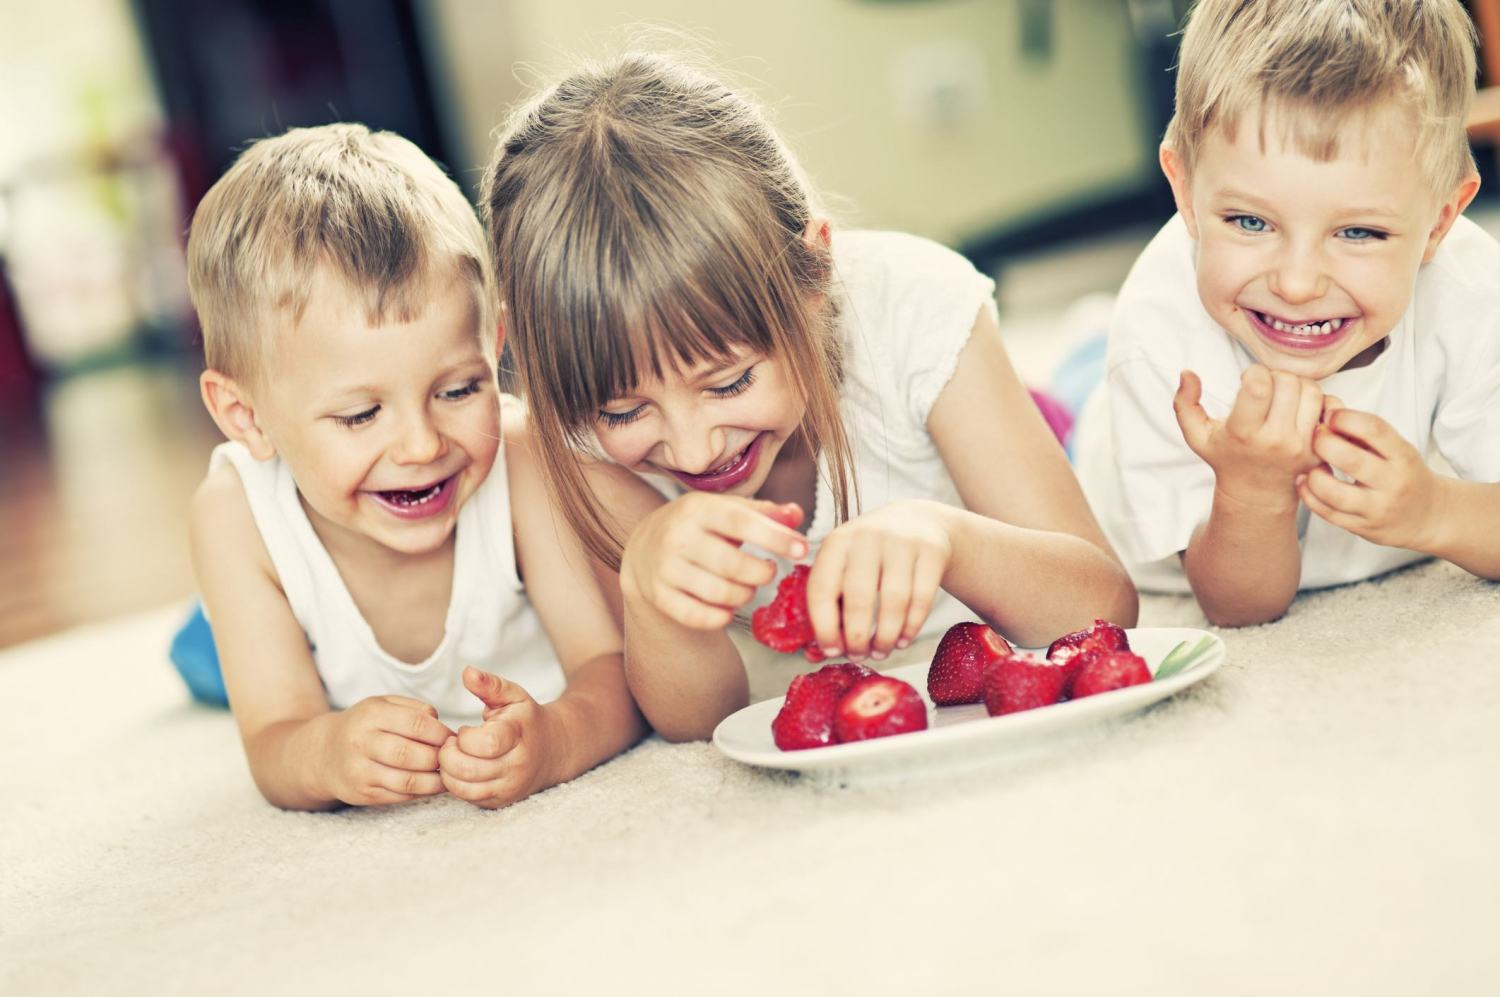 Kids eating strawberries on carpet